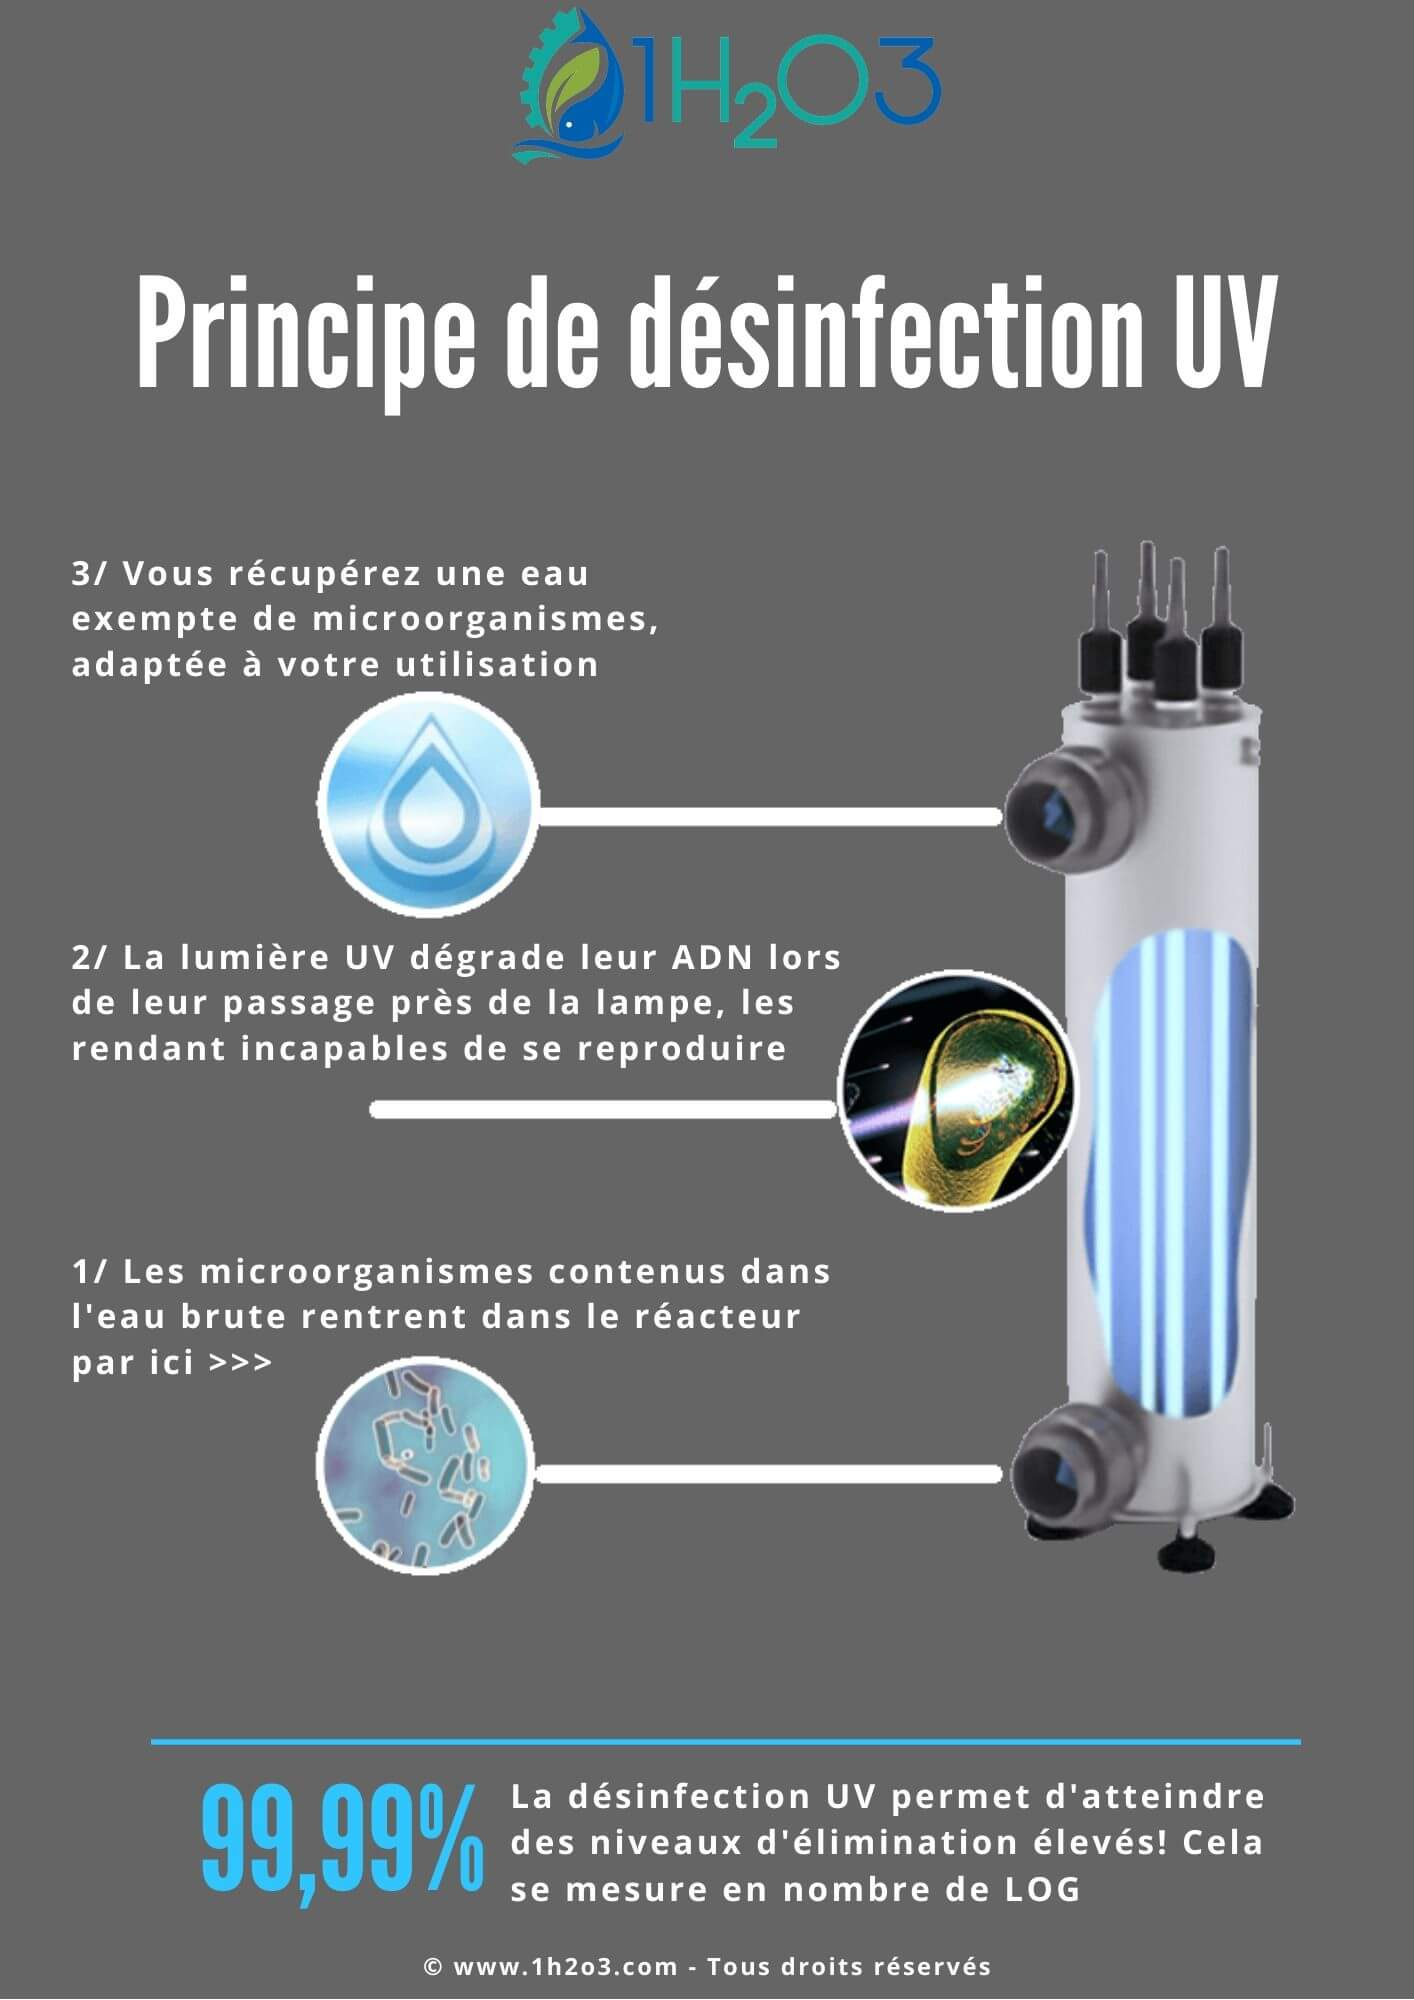 Principe désinfection uv disinfection principle 1h2o3